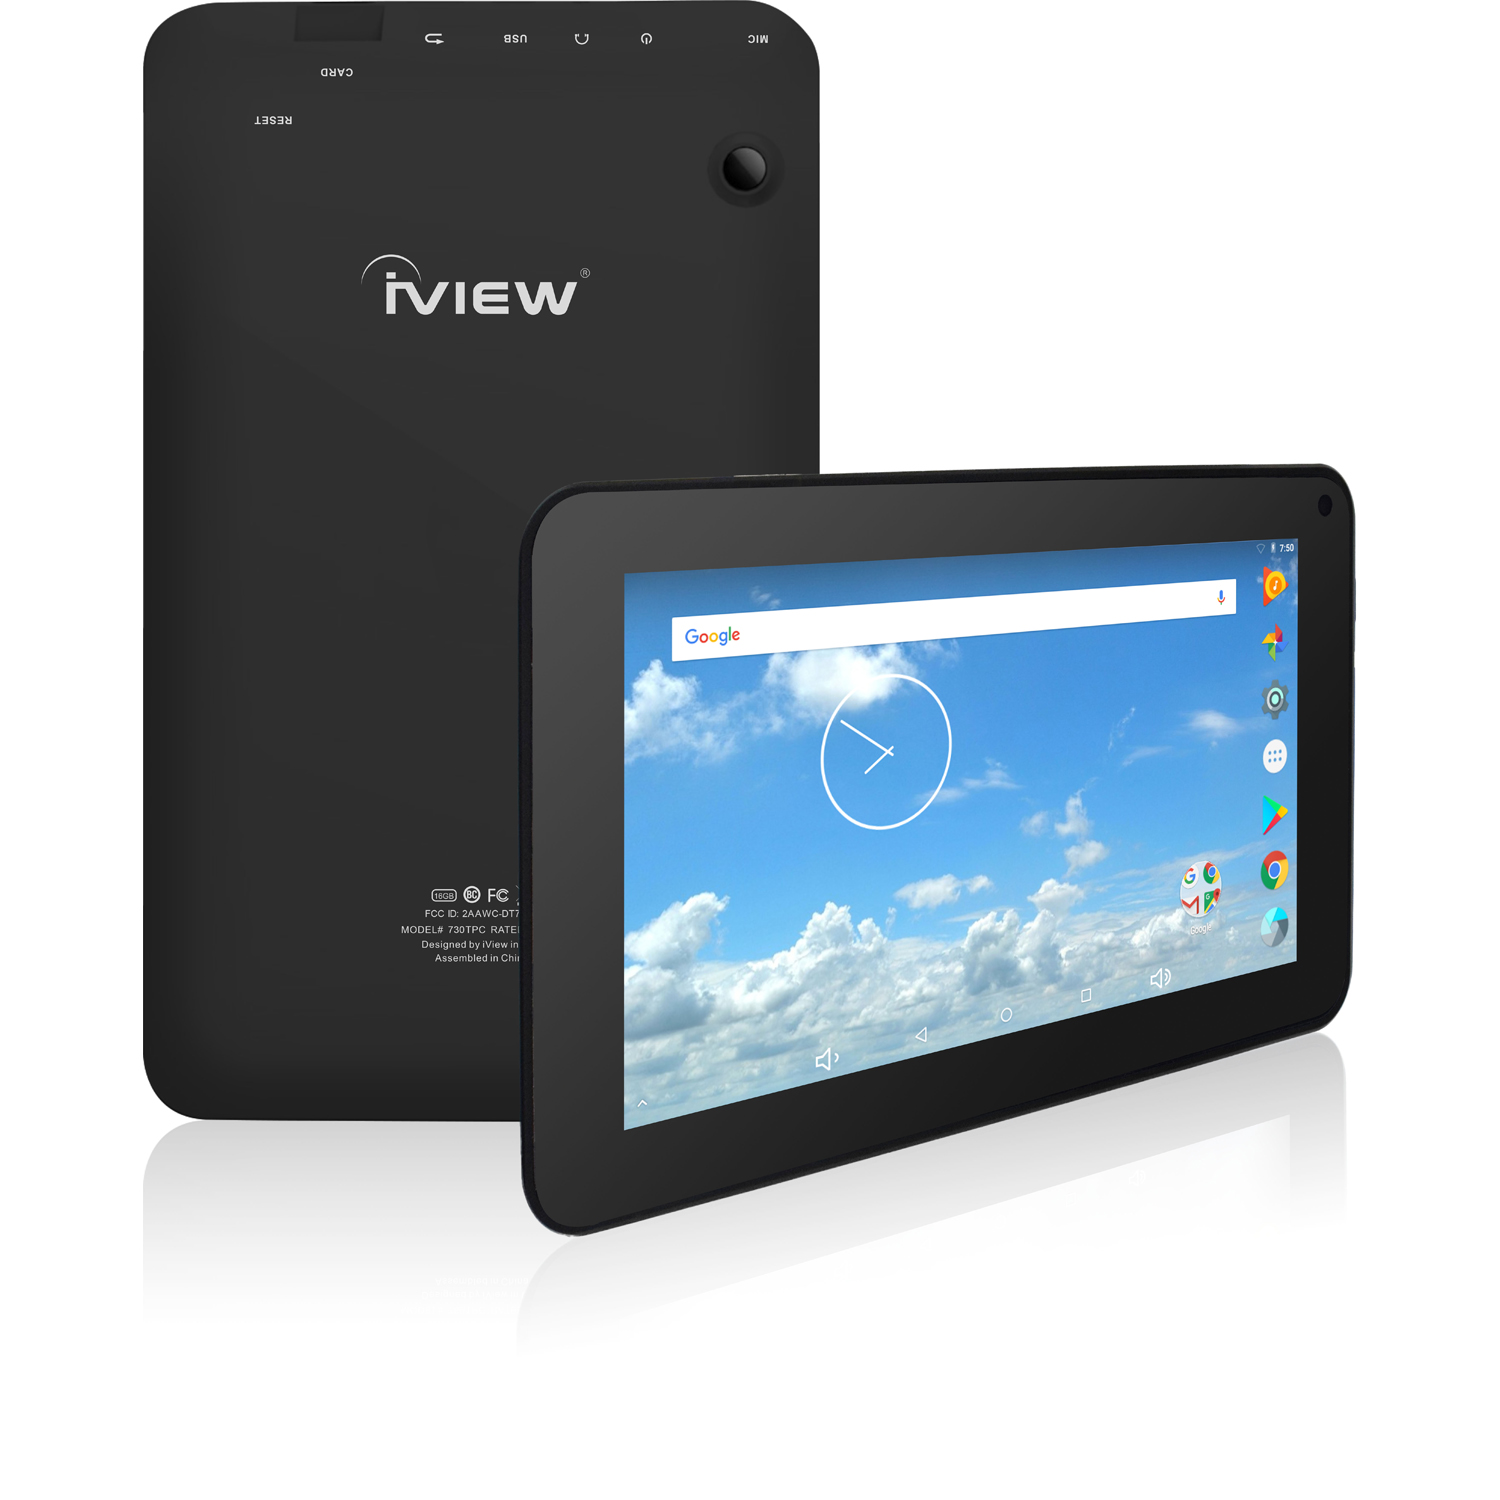 "iView 7"" Tablet PC, Android 7.1, Quad Core Processor, 1GB Memory, 16GB Storage, Front Facing and Rear Camera, Black"